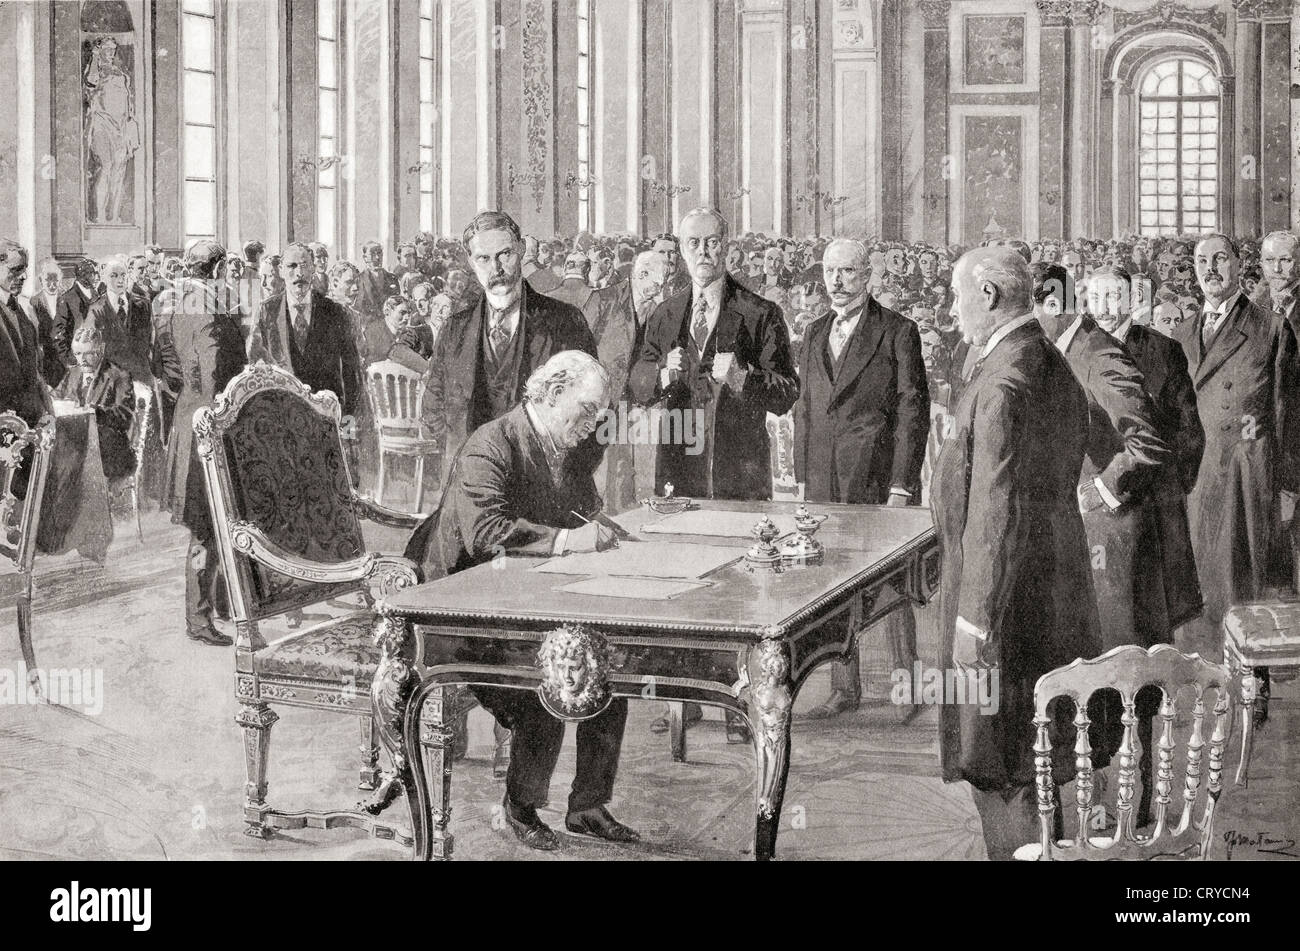 Mr. Lloyd George signs the Peace Treaty with Germany, June 28th, 1919, in the Hall of Mirrors, Palace of Versailles, Stock Foto